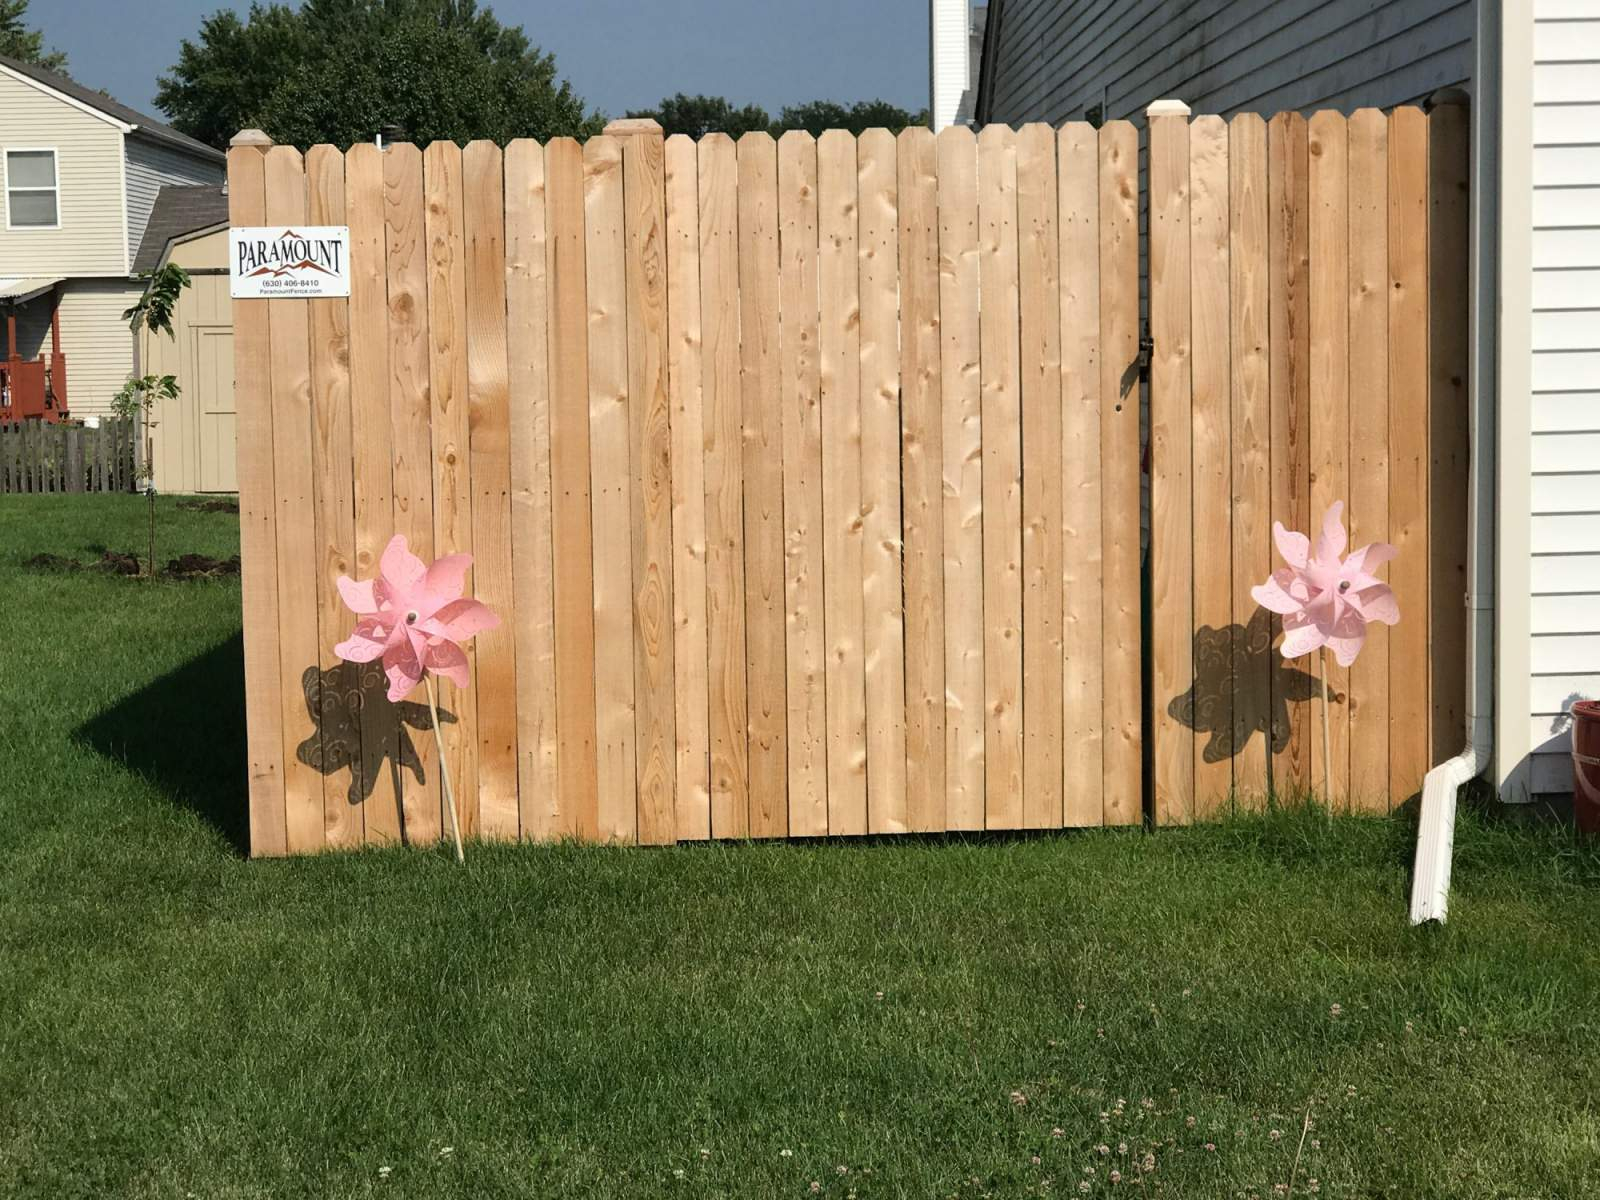 Types Of Fence Batavia Il Paramount Fence inside 10 Smart Initiatives of How to Improve Fences For Backyard